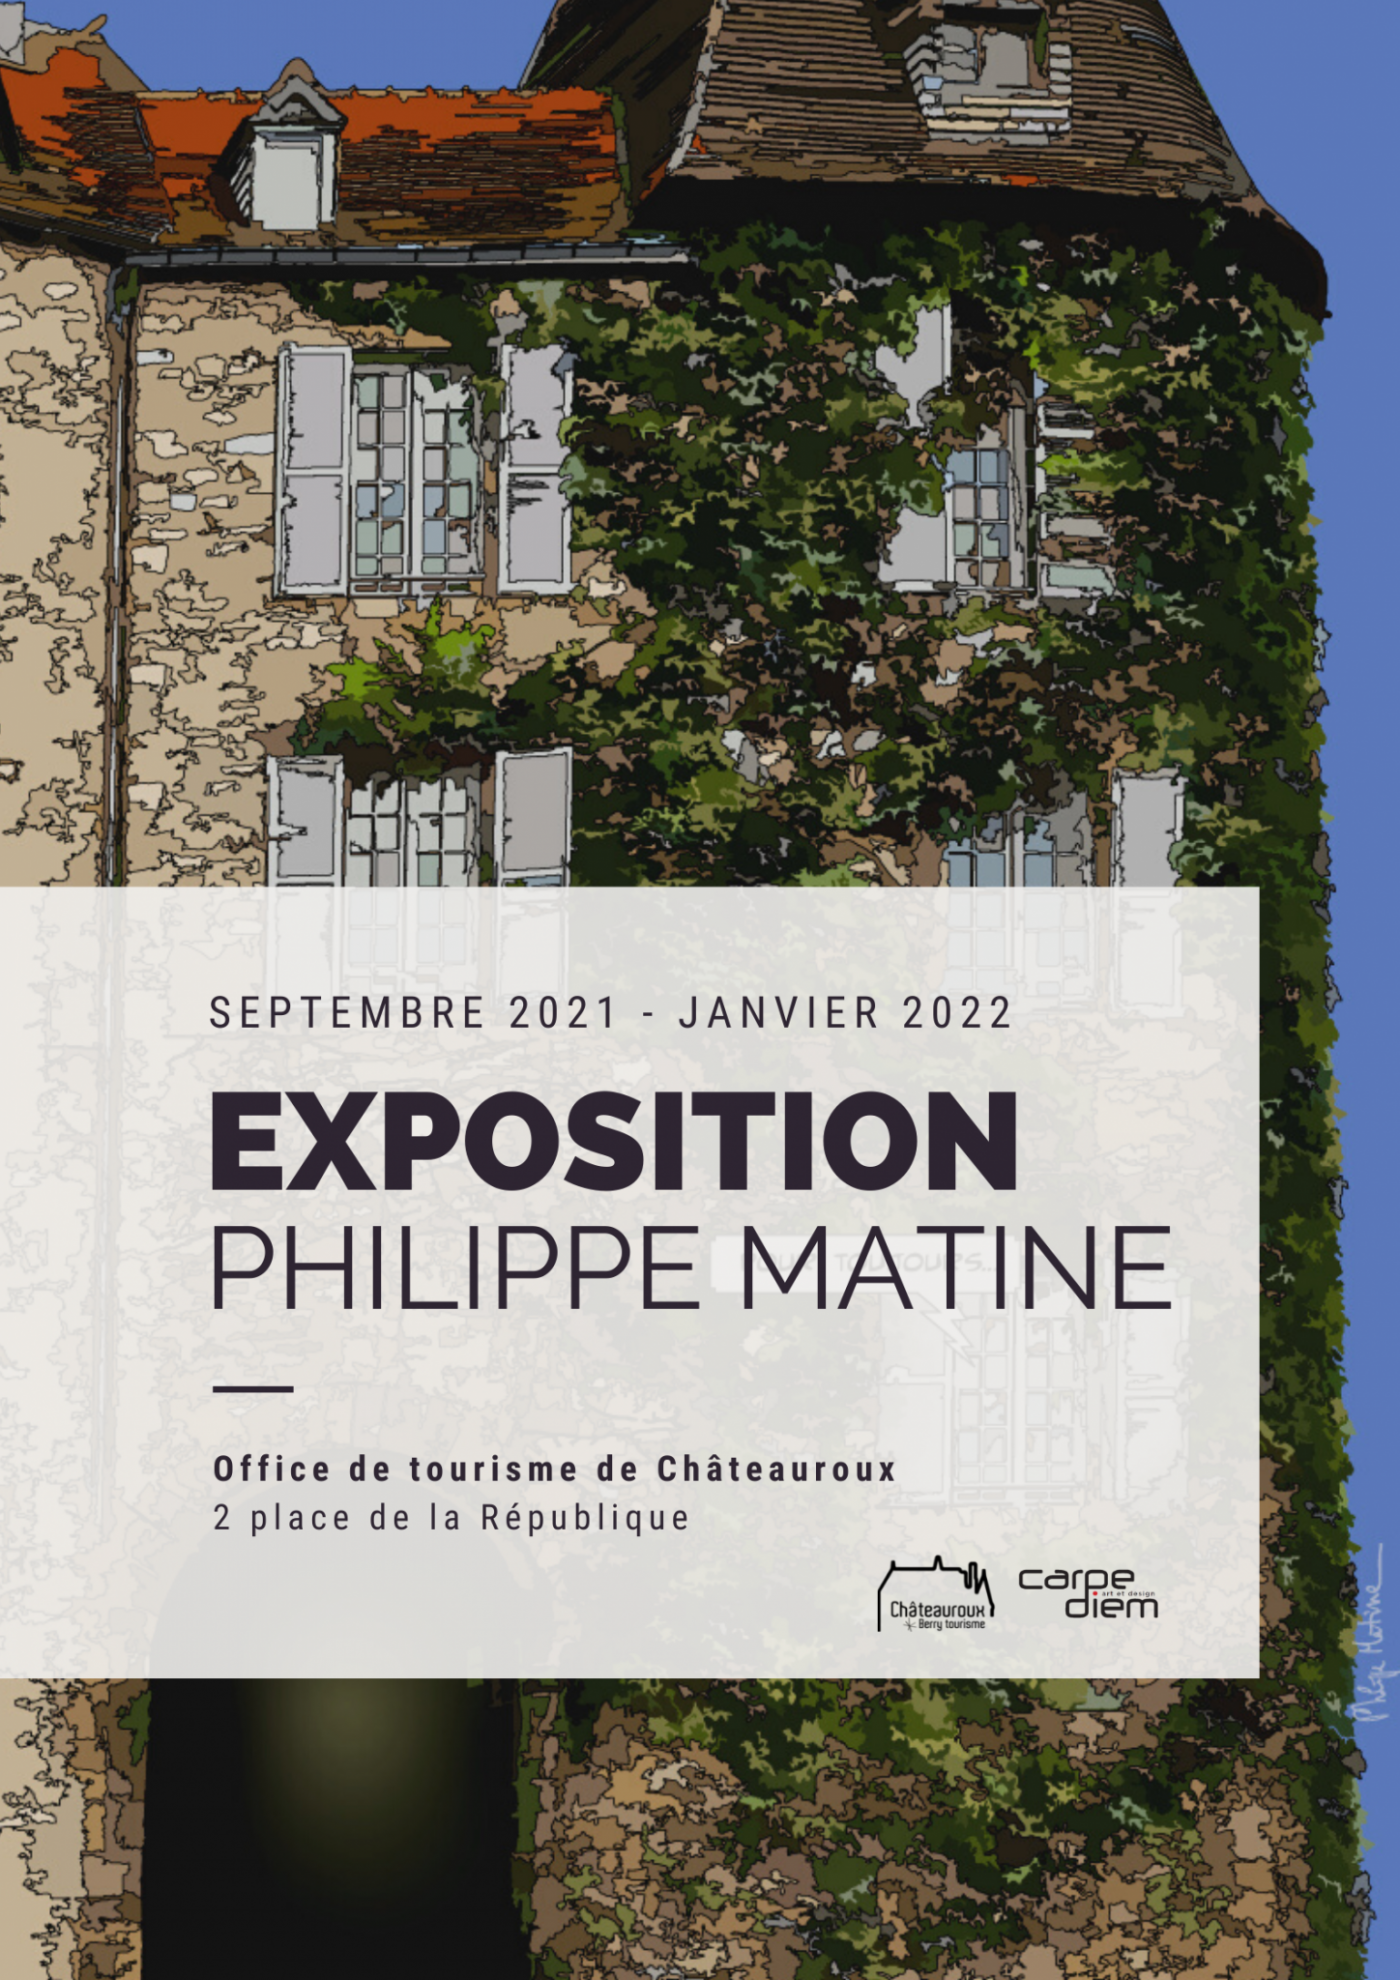 Exposition Philippe Matine